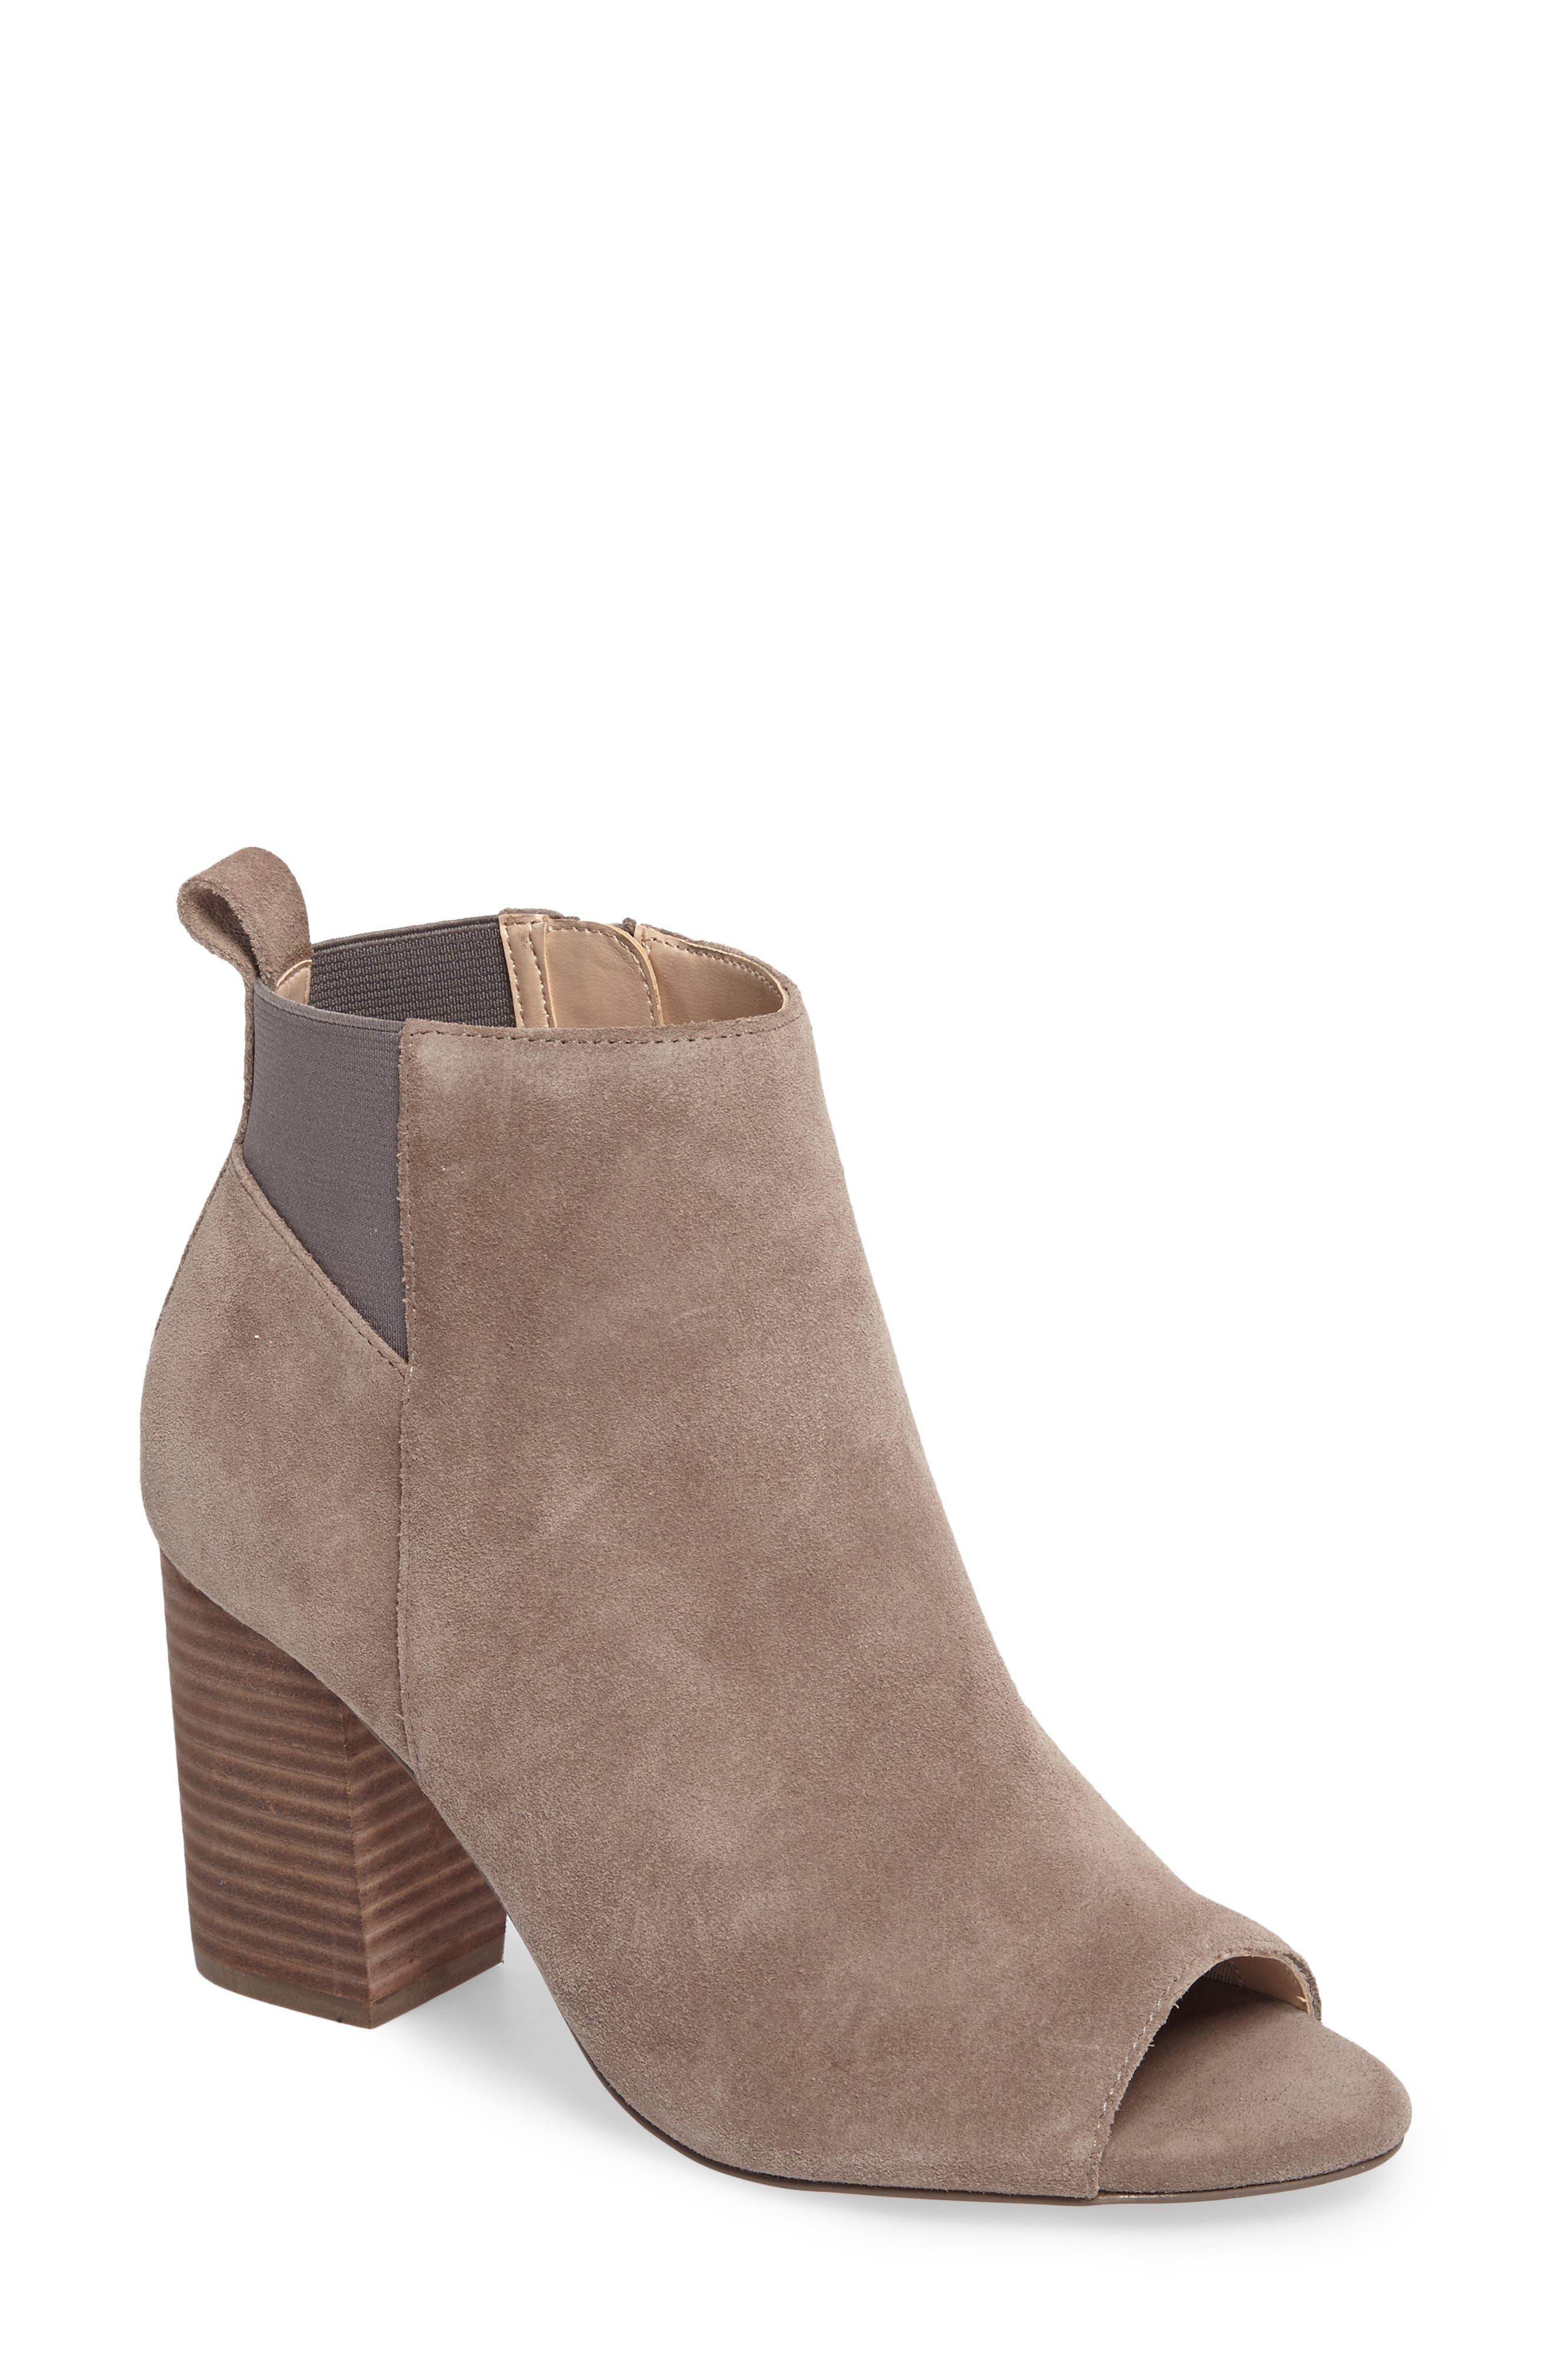 Vita Peep Toe Bootie,                             Main thumbnail 1, color,                             020